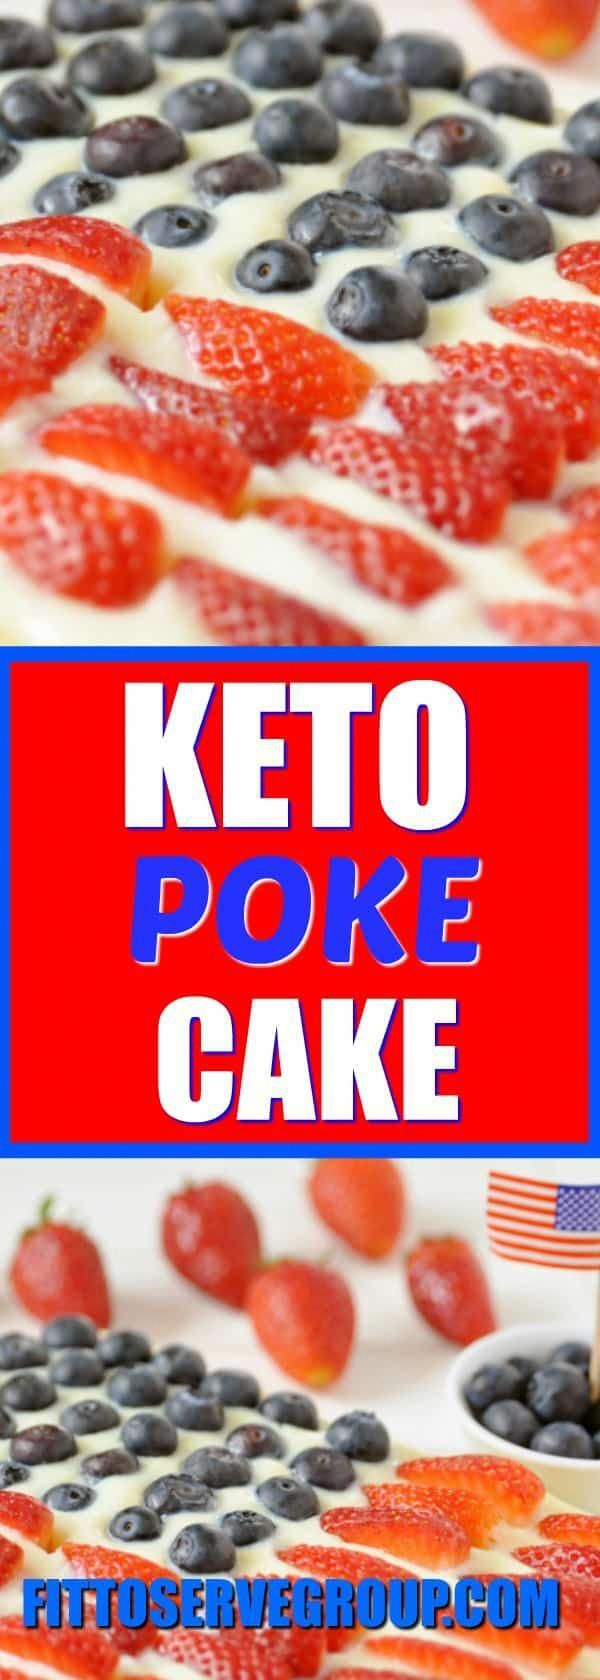 It's a keto poke cake decorated to look like an American flag. It's a perfect low carb poke cake for the 4th of July.